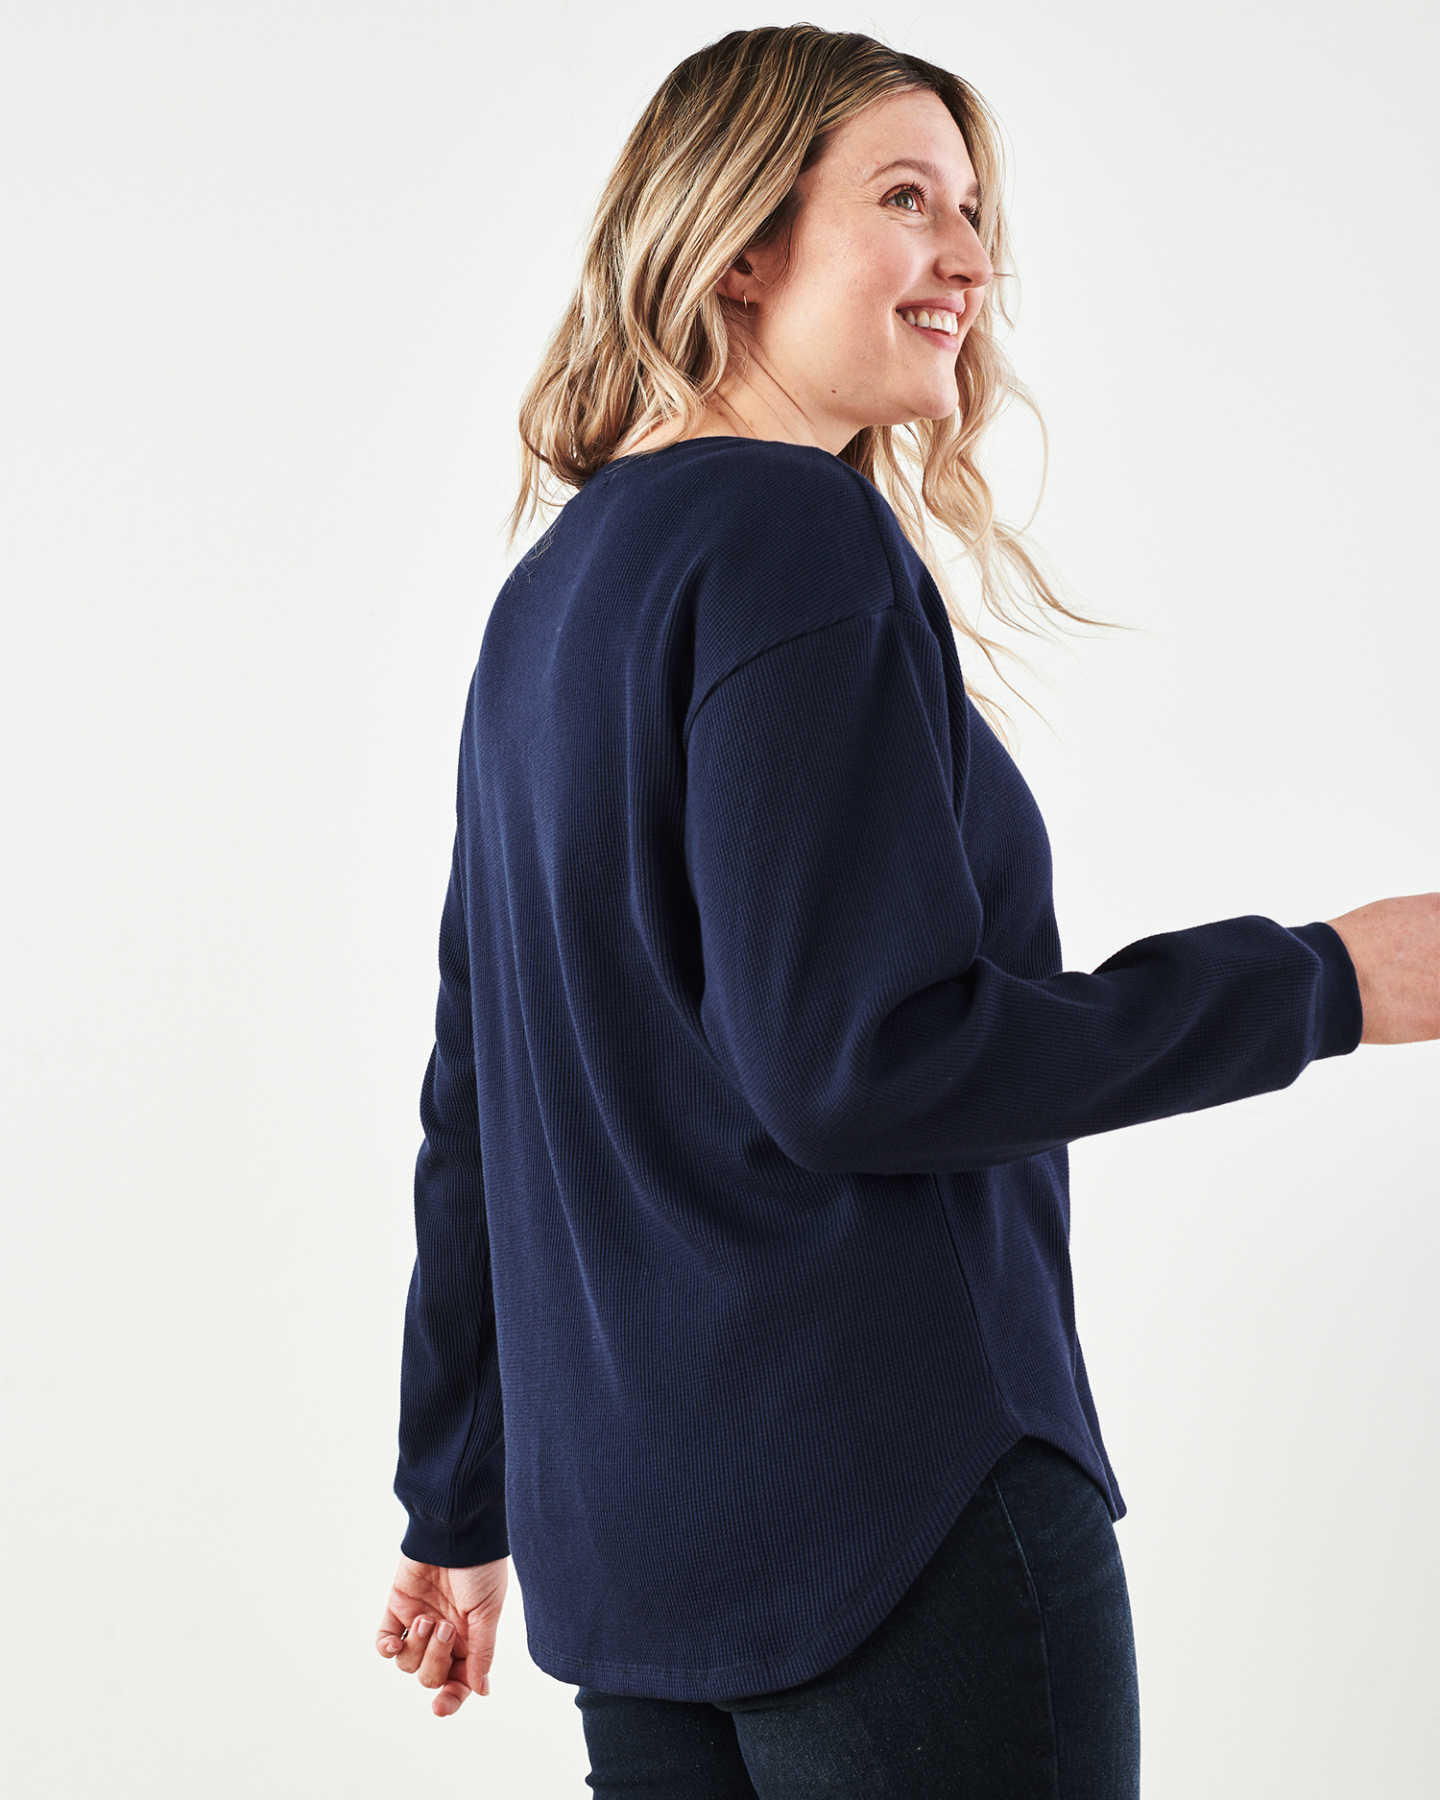 Luxe Organic Waffle Thermal Crew - Navy - 4